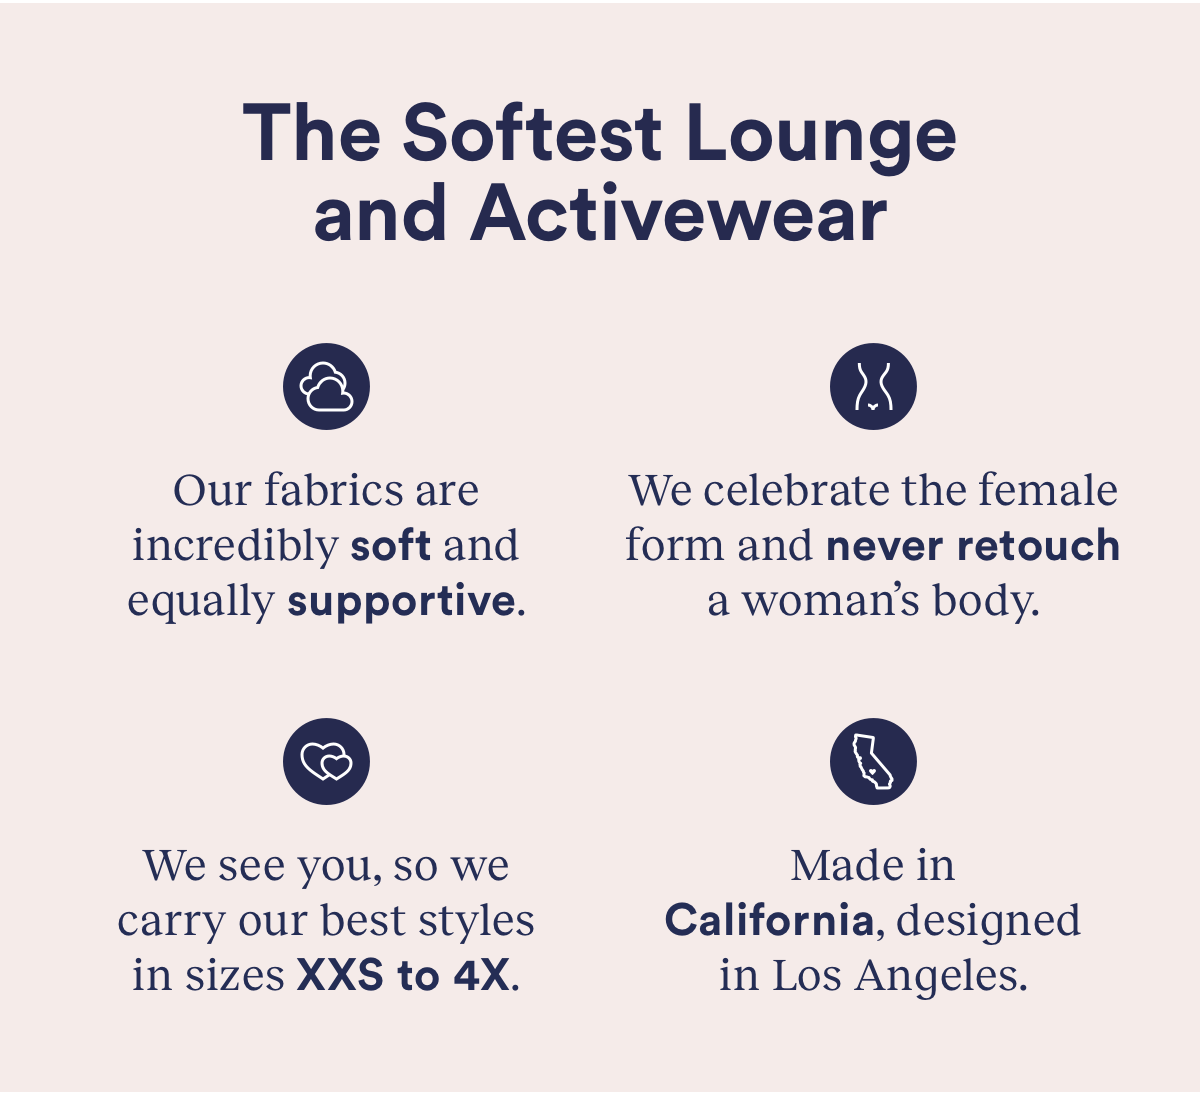 The Softest Lounge and Activewear